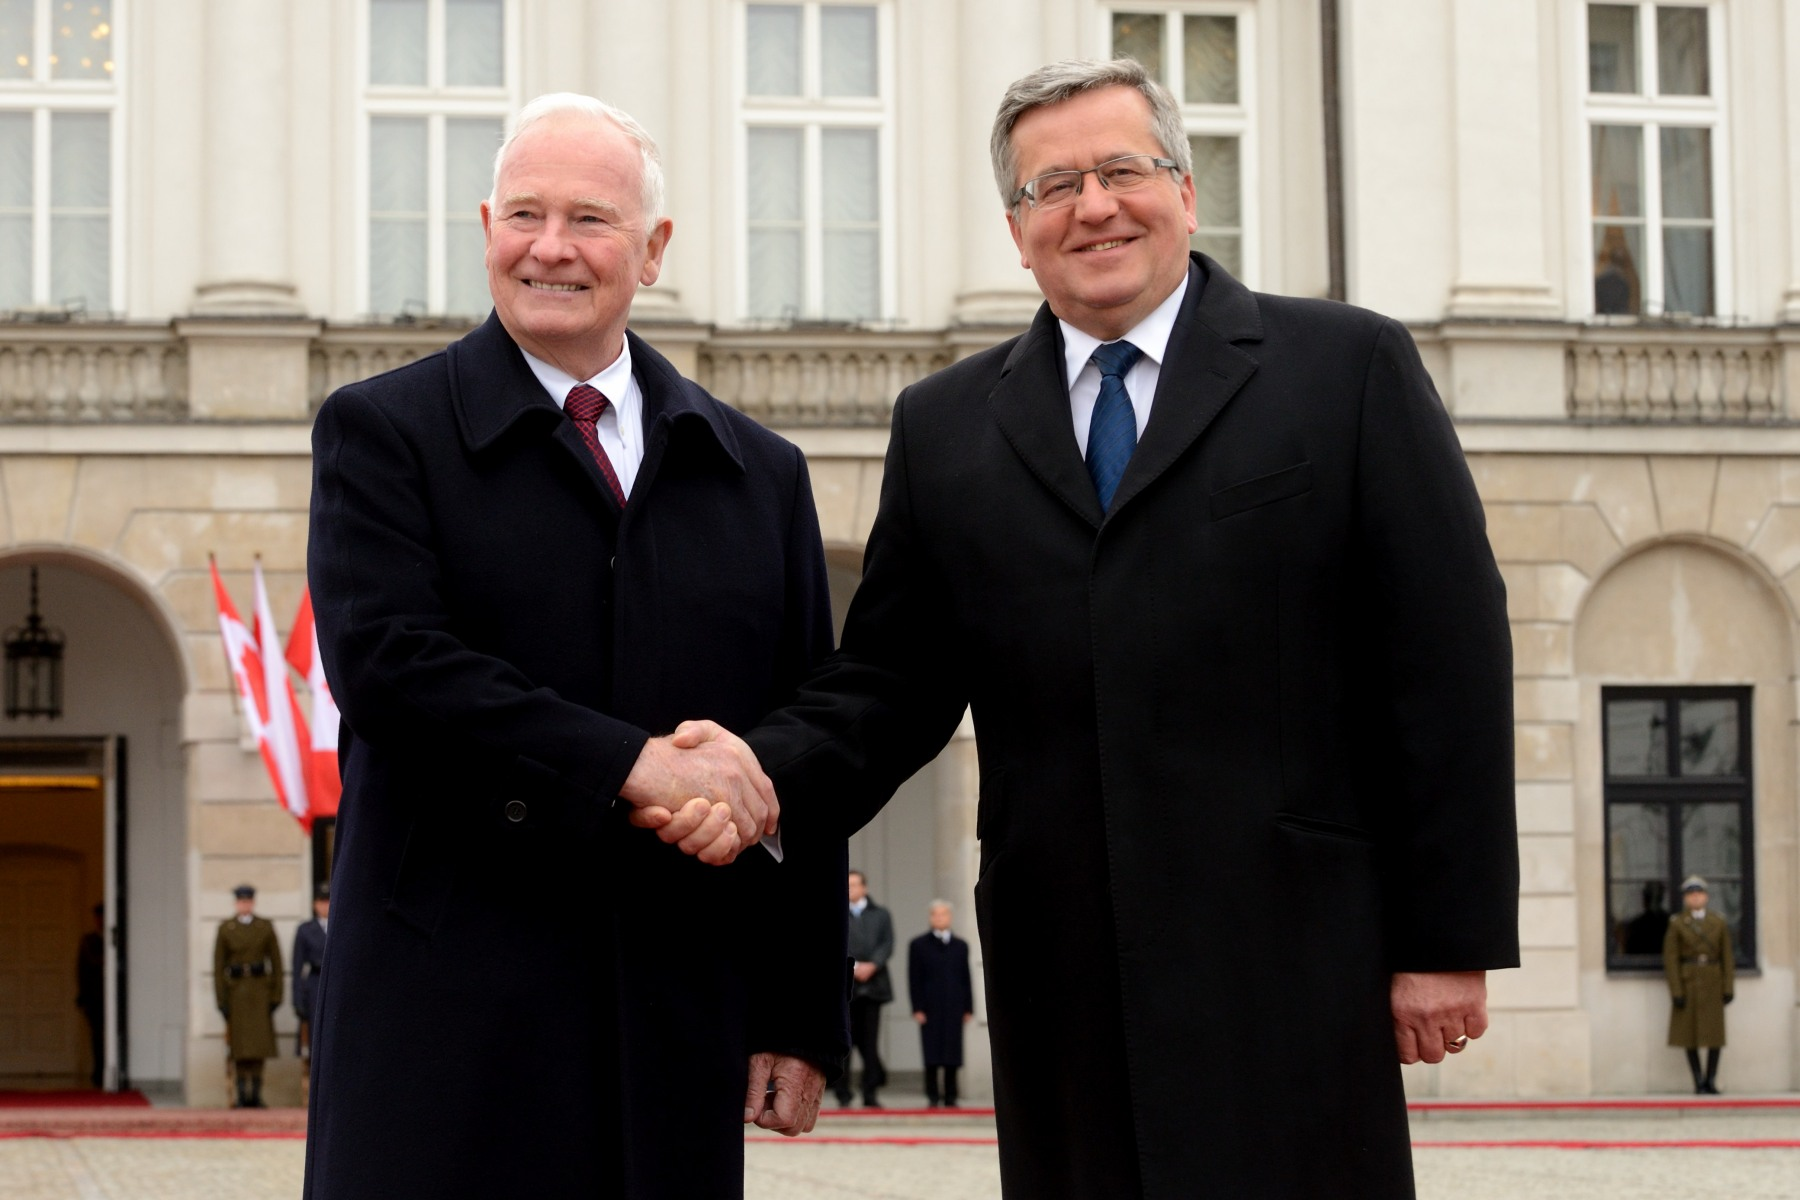 During his State visit to Poland, the Governor General will take part in discussions with political and business leaders to reinforce Canada's reputation as a strong and reliable partner. He will also lay wreaths at important cemeteries and memorials to acknowledge Canada's role in many key historic events being commemorated this year, notably the 70th anniversary of the battles of Monte Cassino and Normandy, the 70th anniversary of the Warsaw Uprising and the 75th anniversary of the beginning of World War II, as well as the 15th anniversary of Poland's membership in NATO.